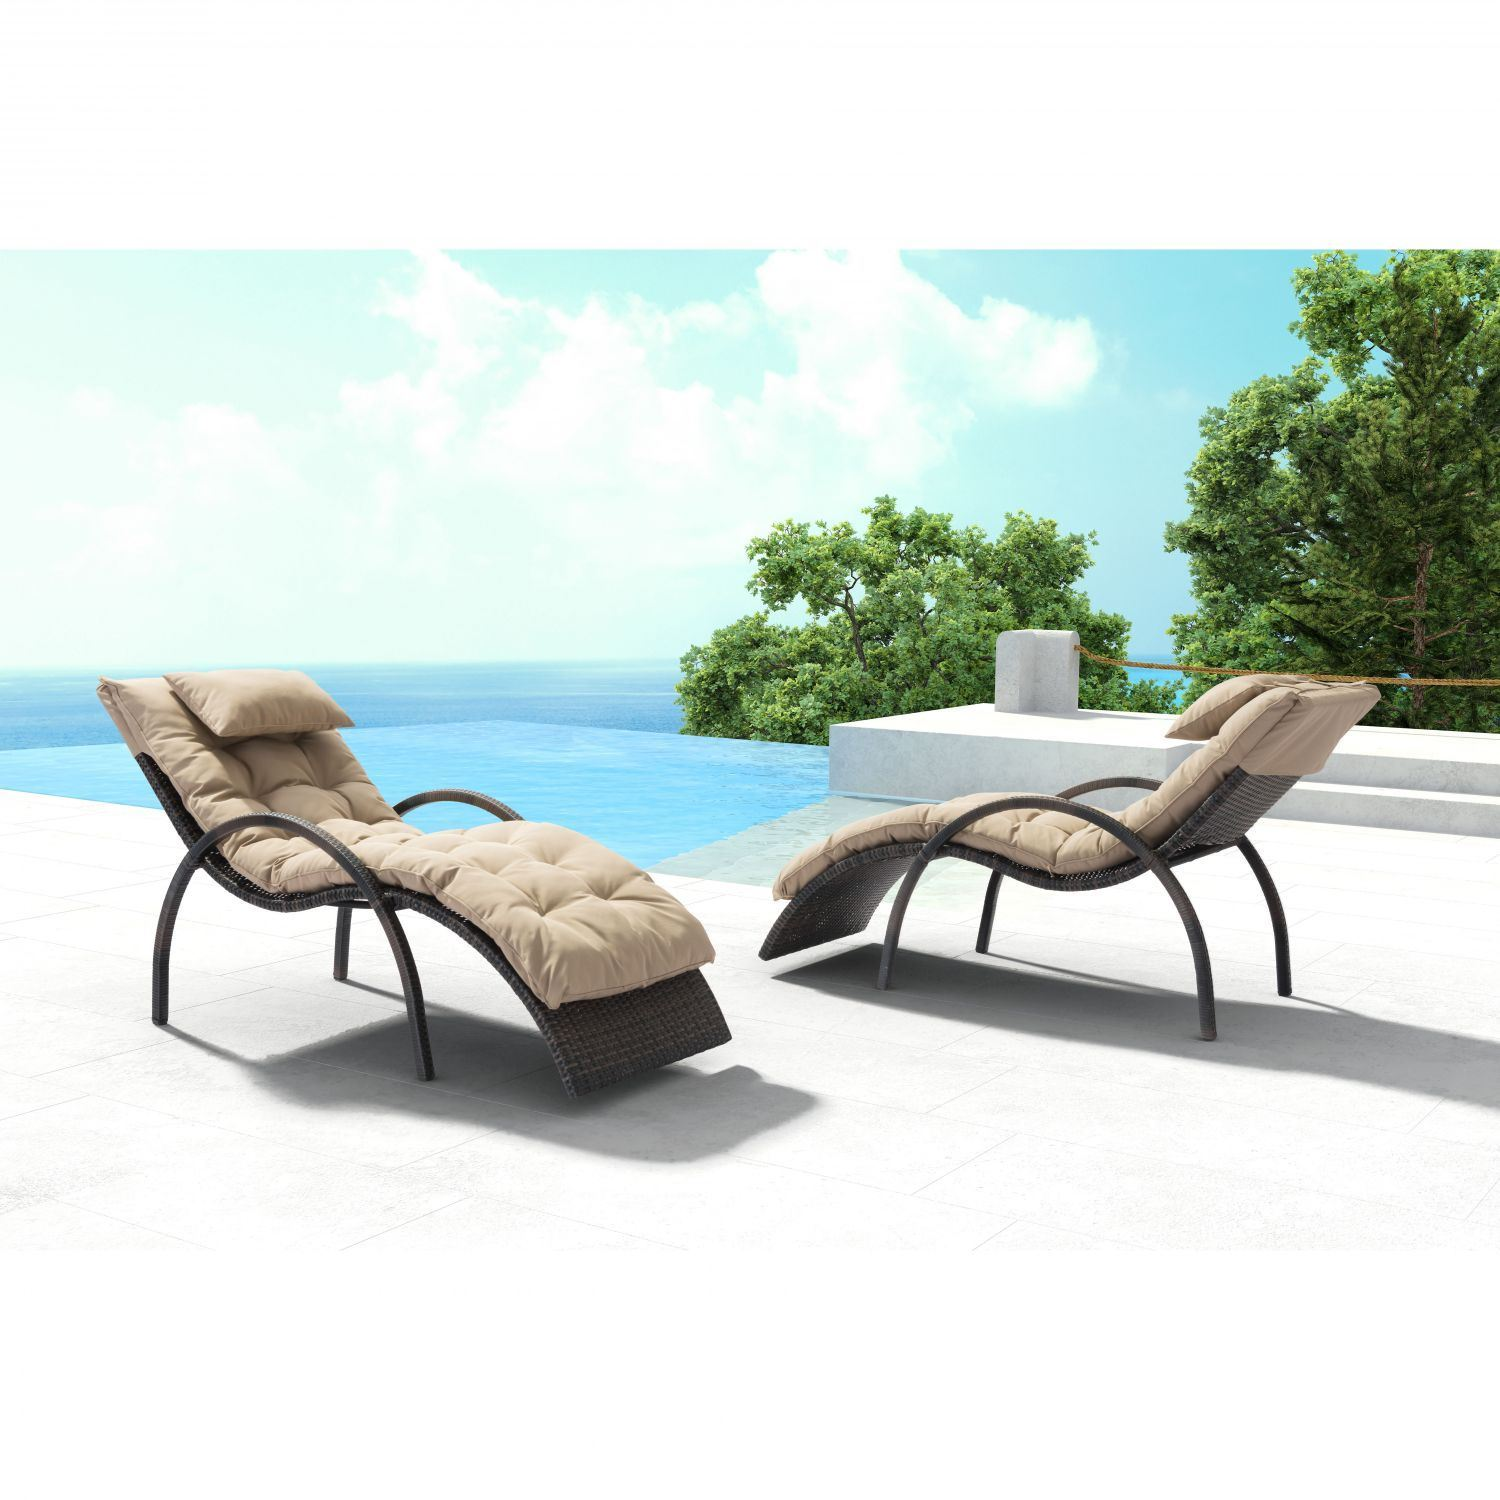 Eggertz beach chaise lounge brown beige 703841 zuo for Beach chaise lounge